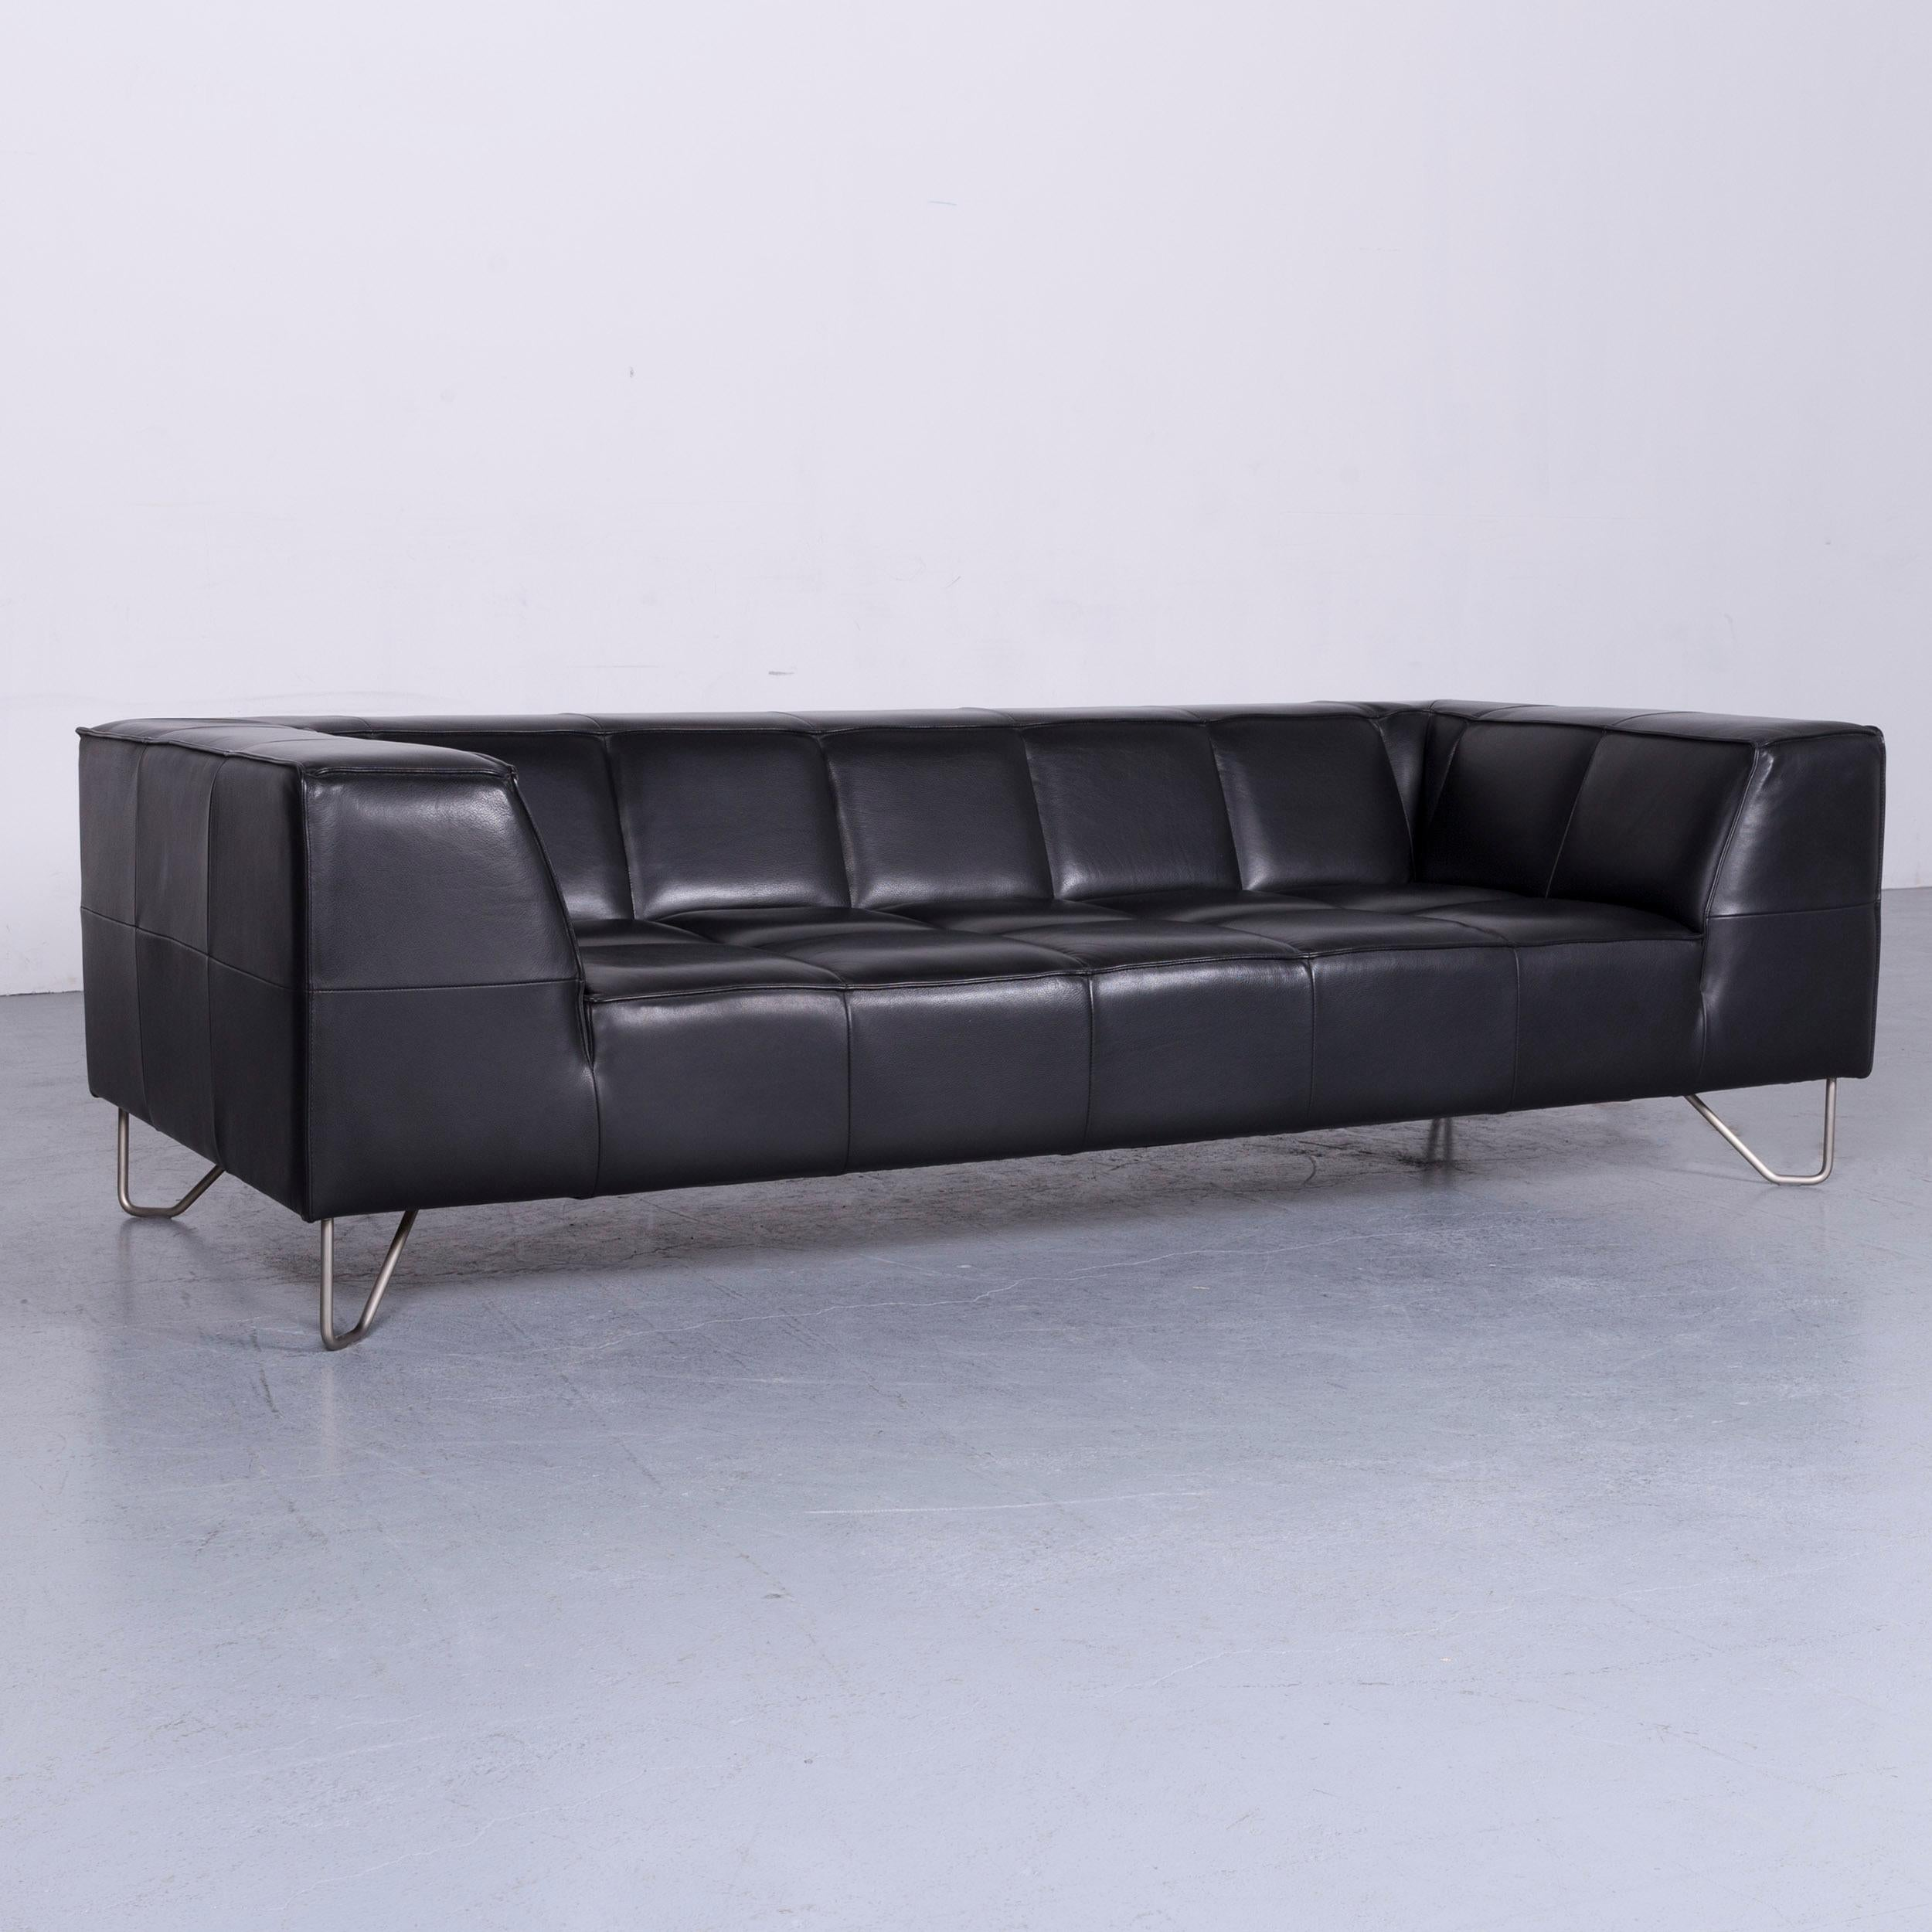 We Bring To You A BoConcept Milos Designer Sofa Black Leather Three Seat  Couch.